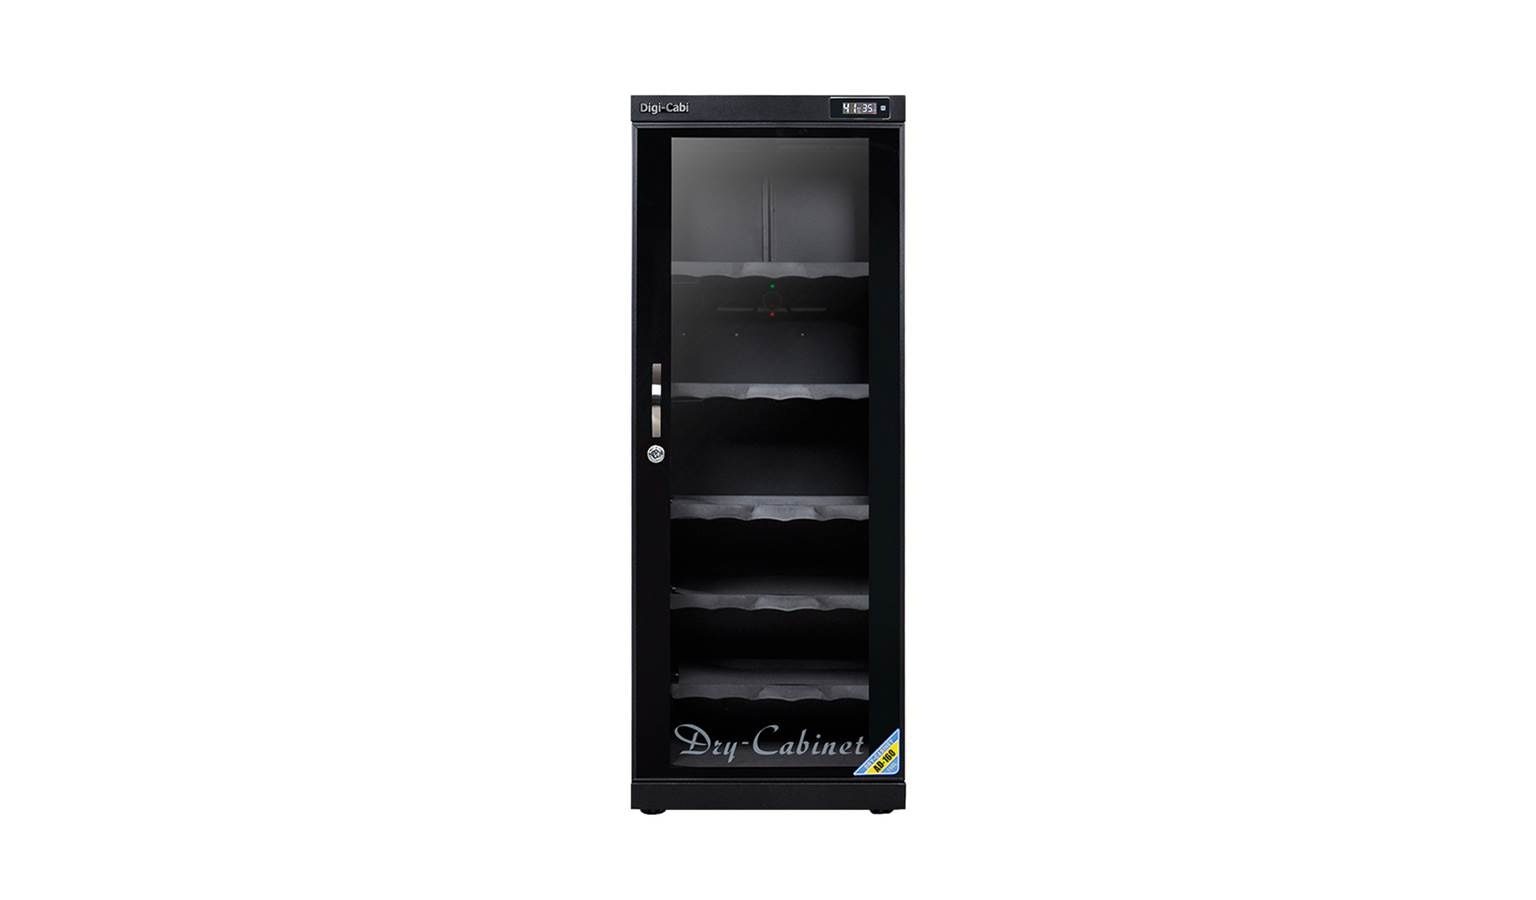 Digicabi AD-160N Dry Cabinet (Front)